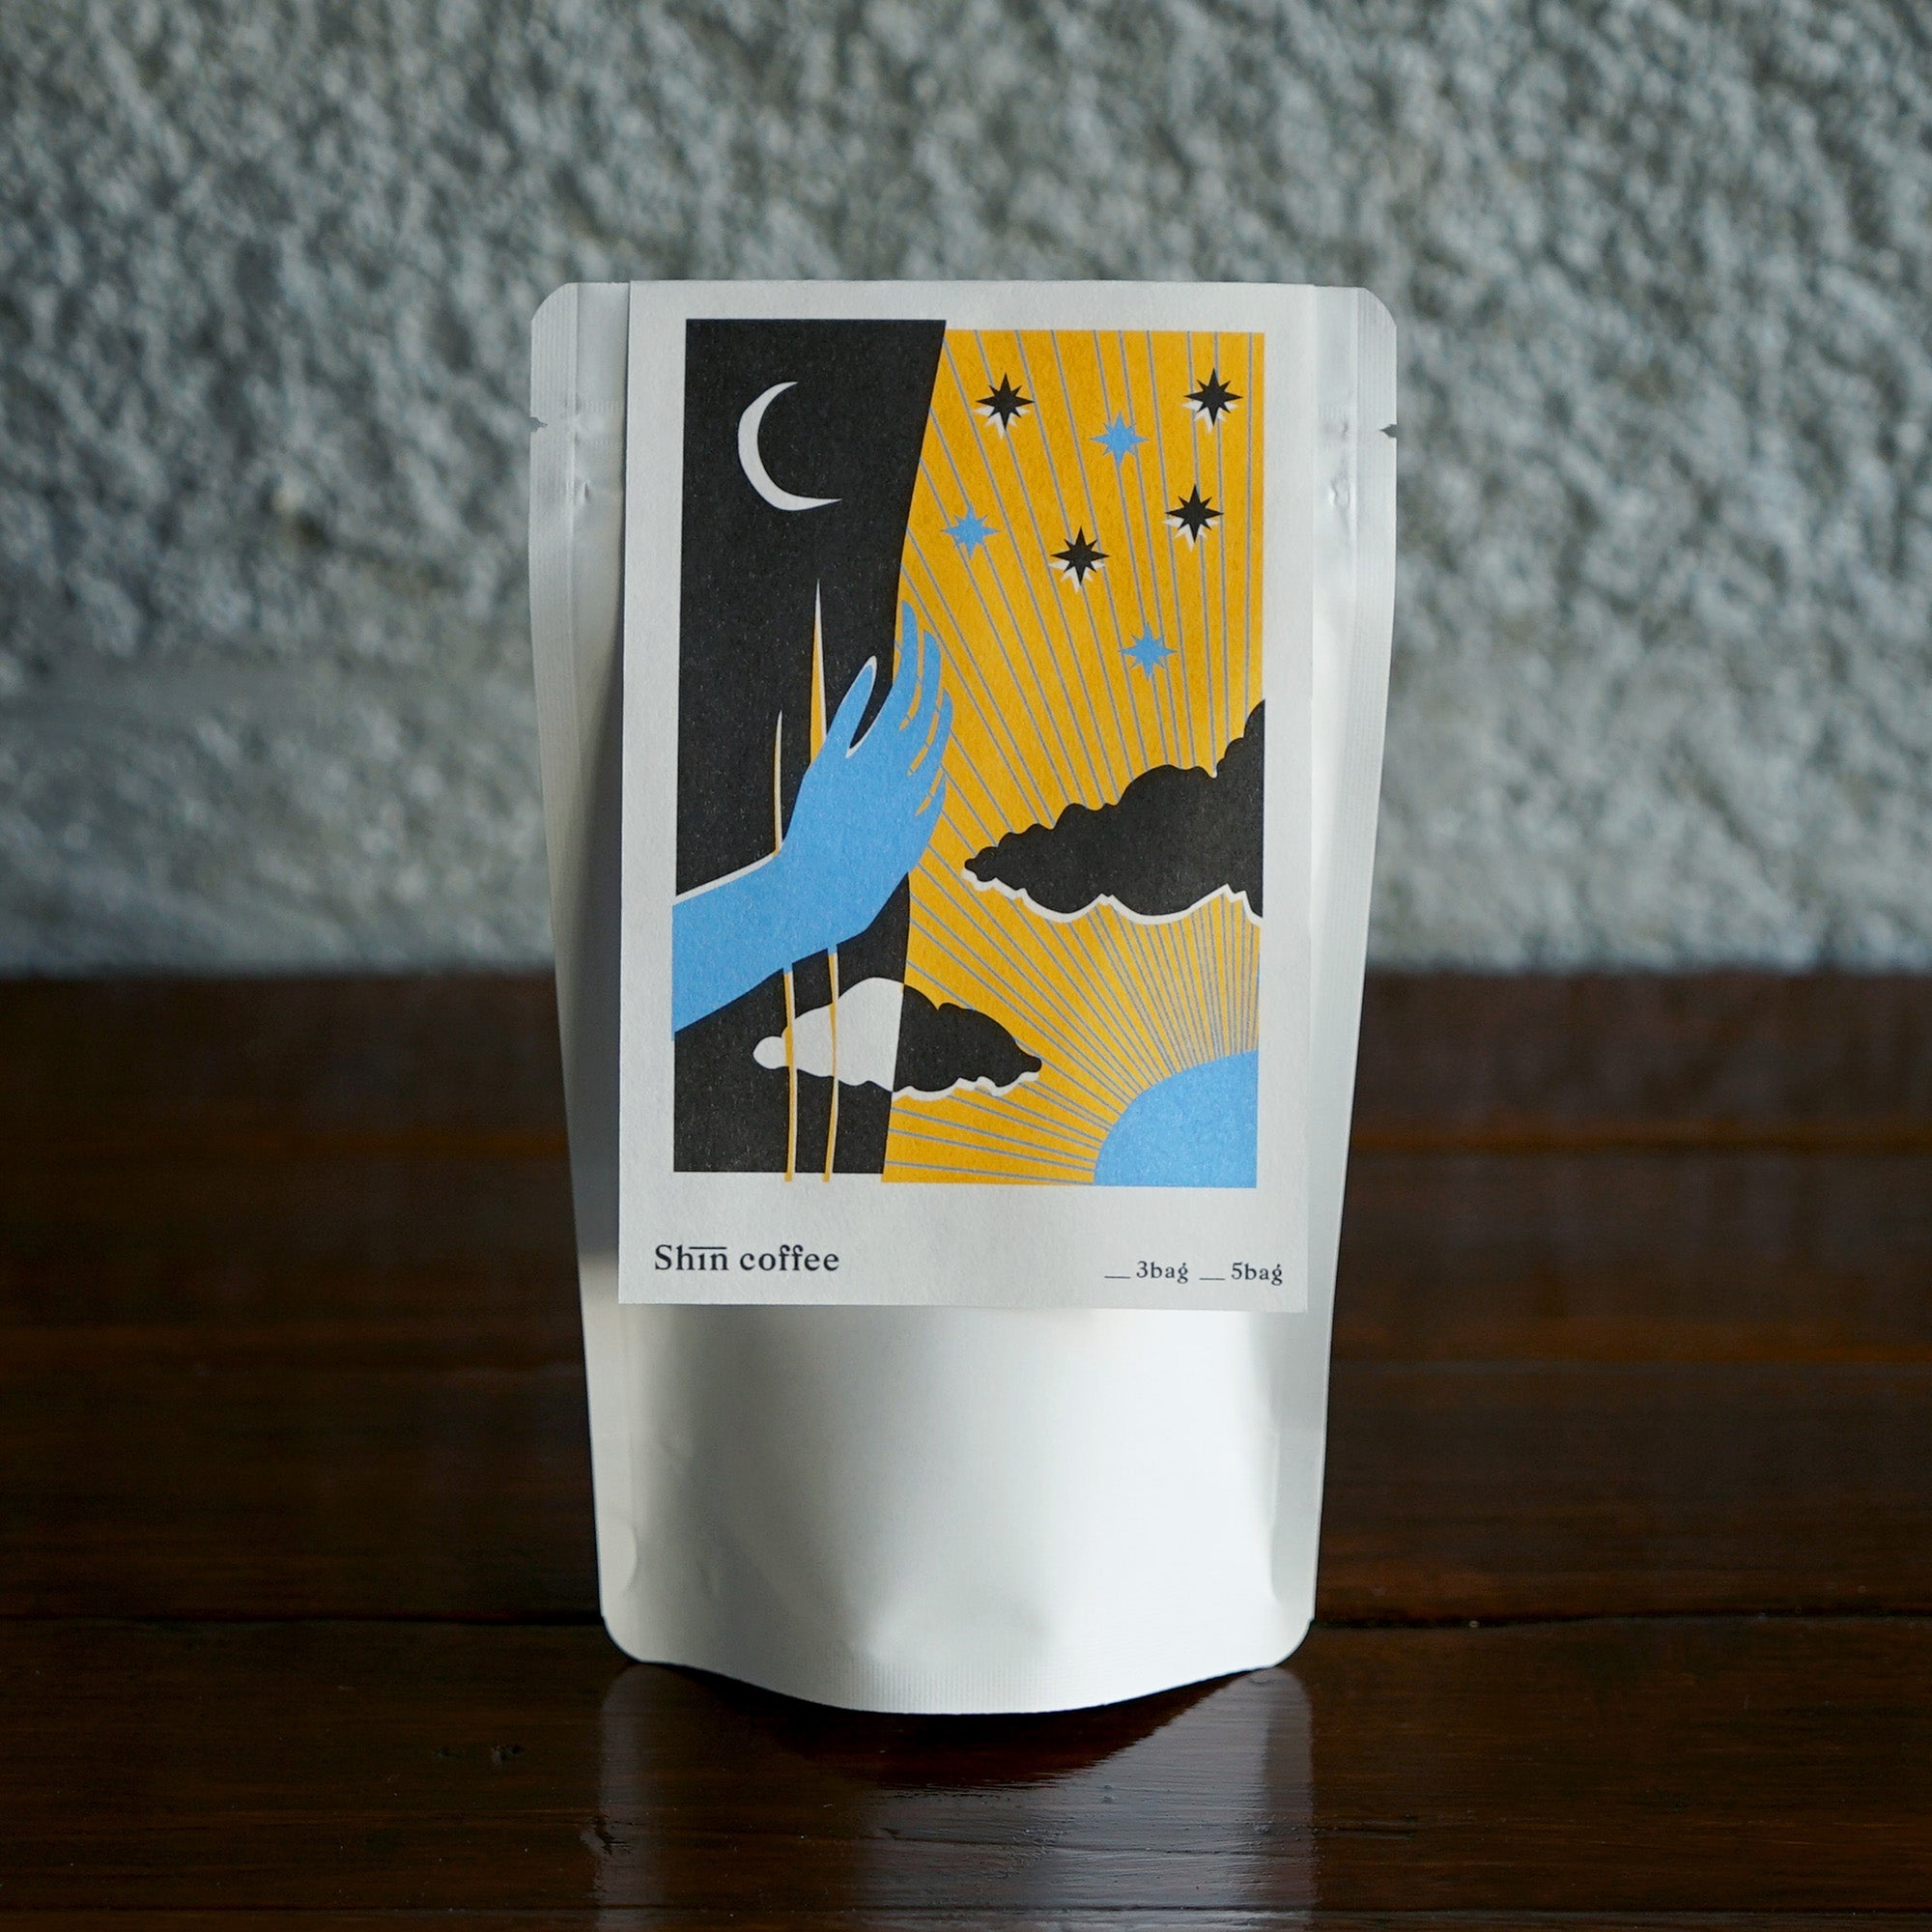 【Shin coffee】Sunrise ~5bag~ - tagcafe